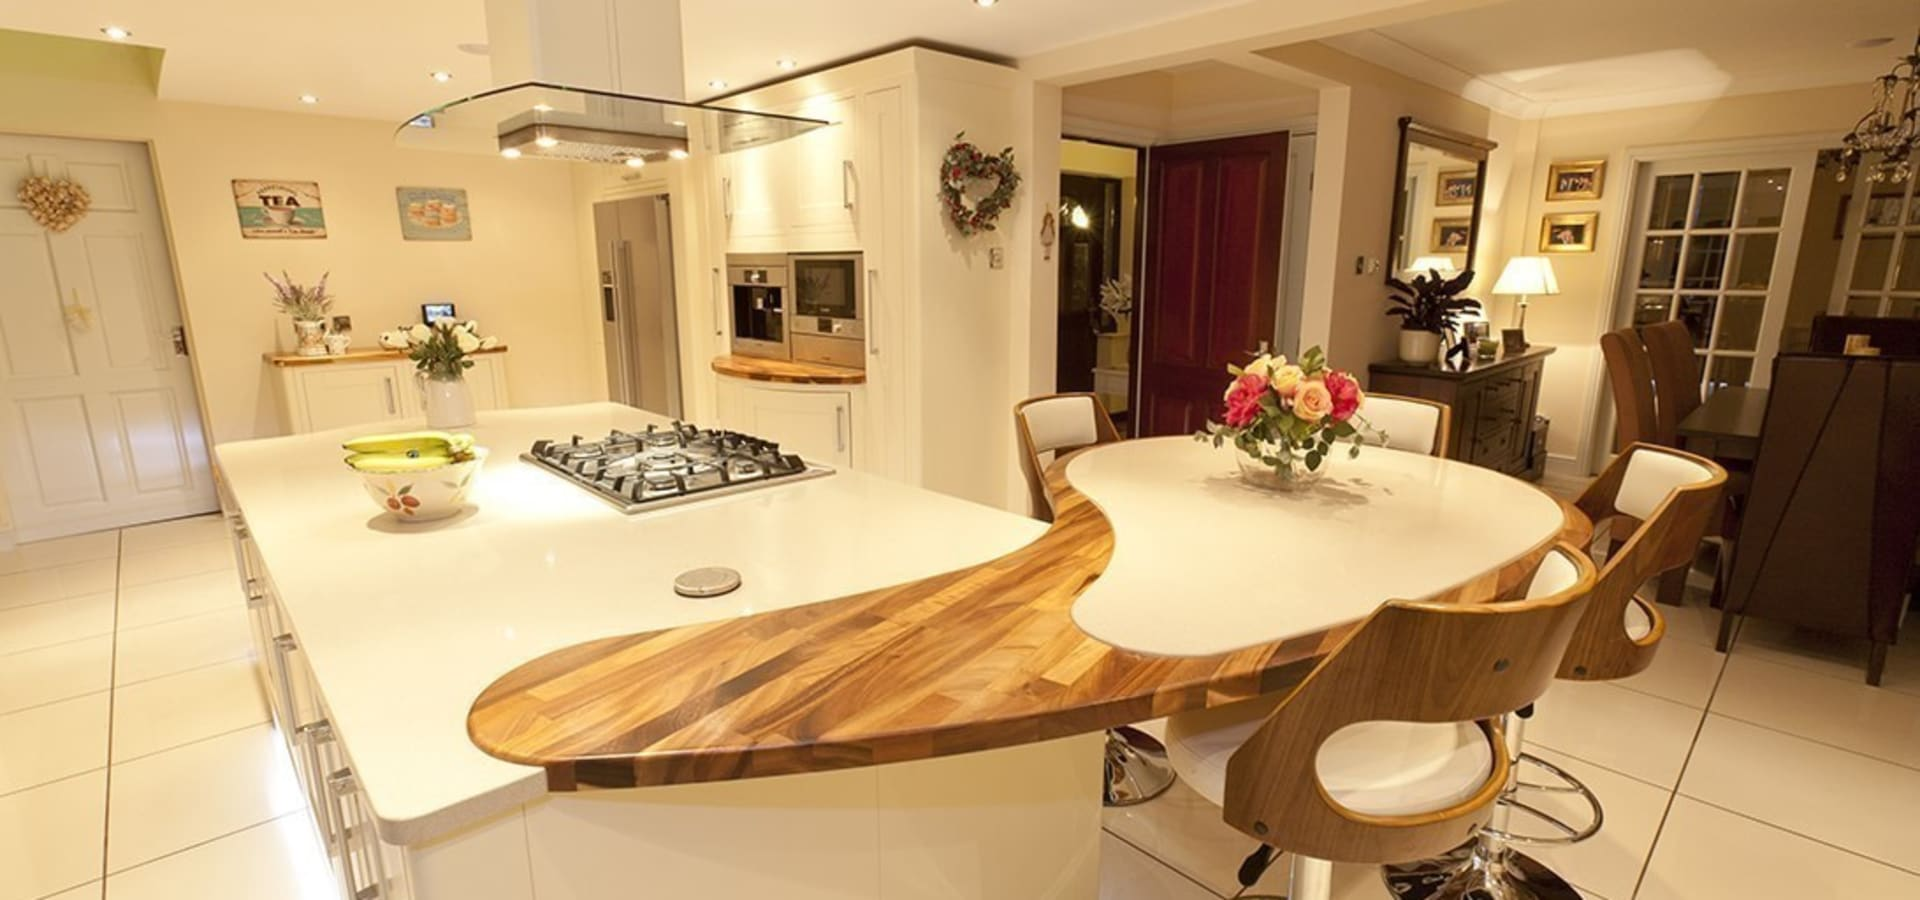 Traditional Kitchen in Bradford at Tong Village by Twenty 5 Design ...